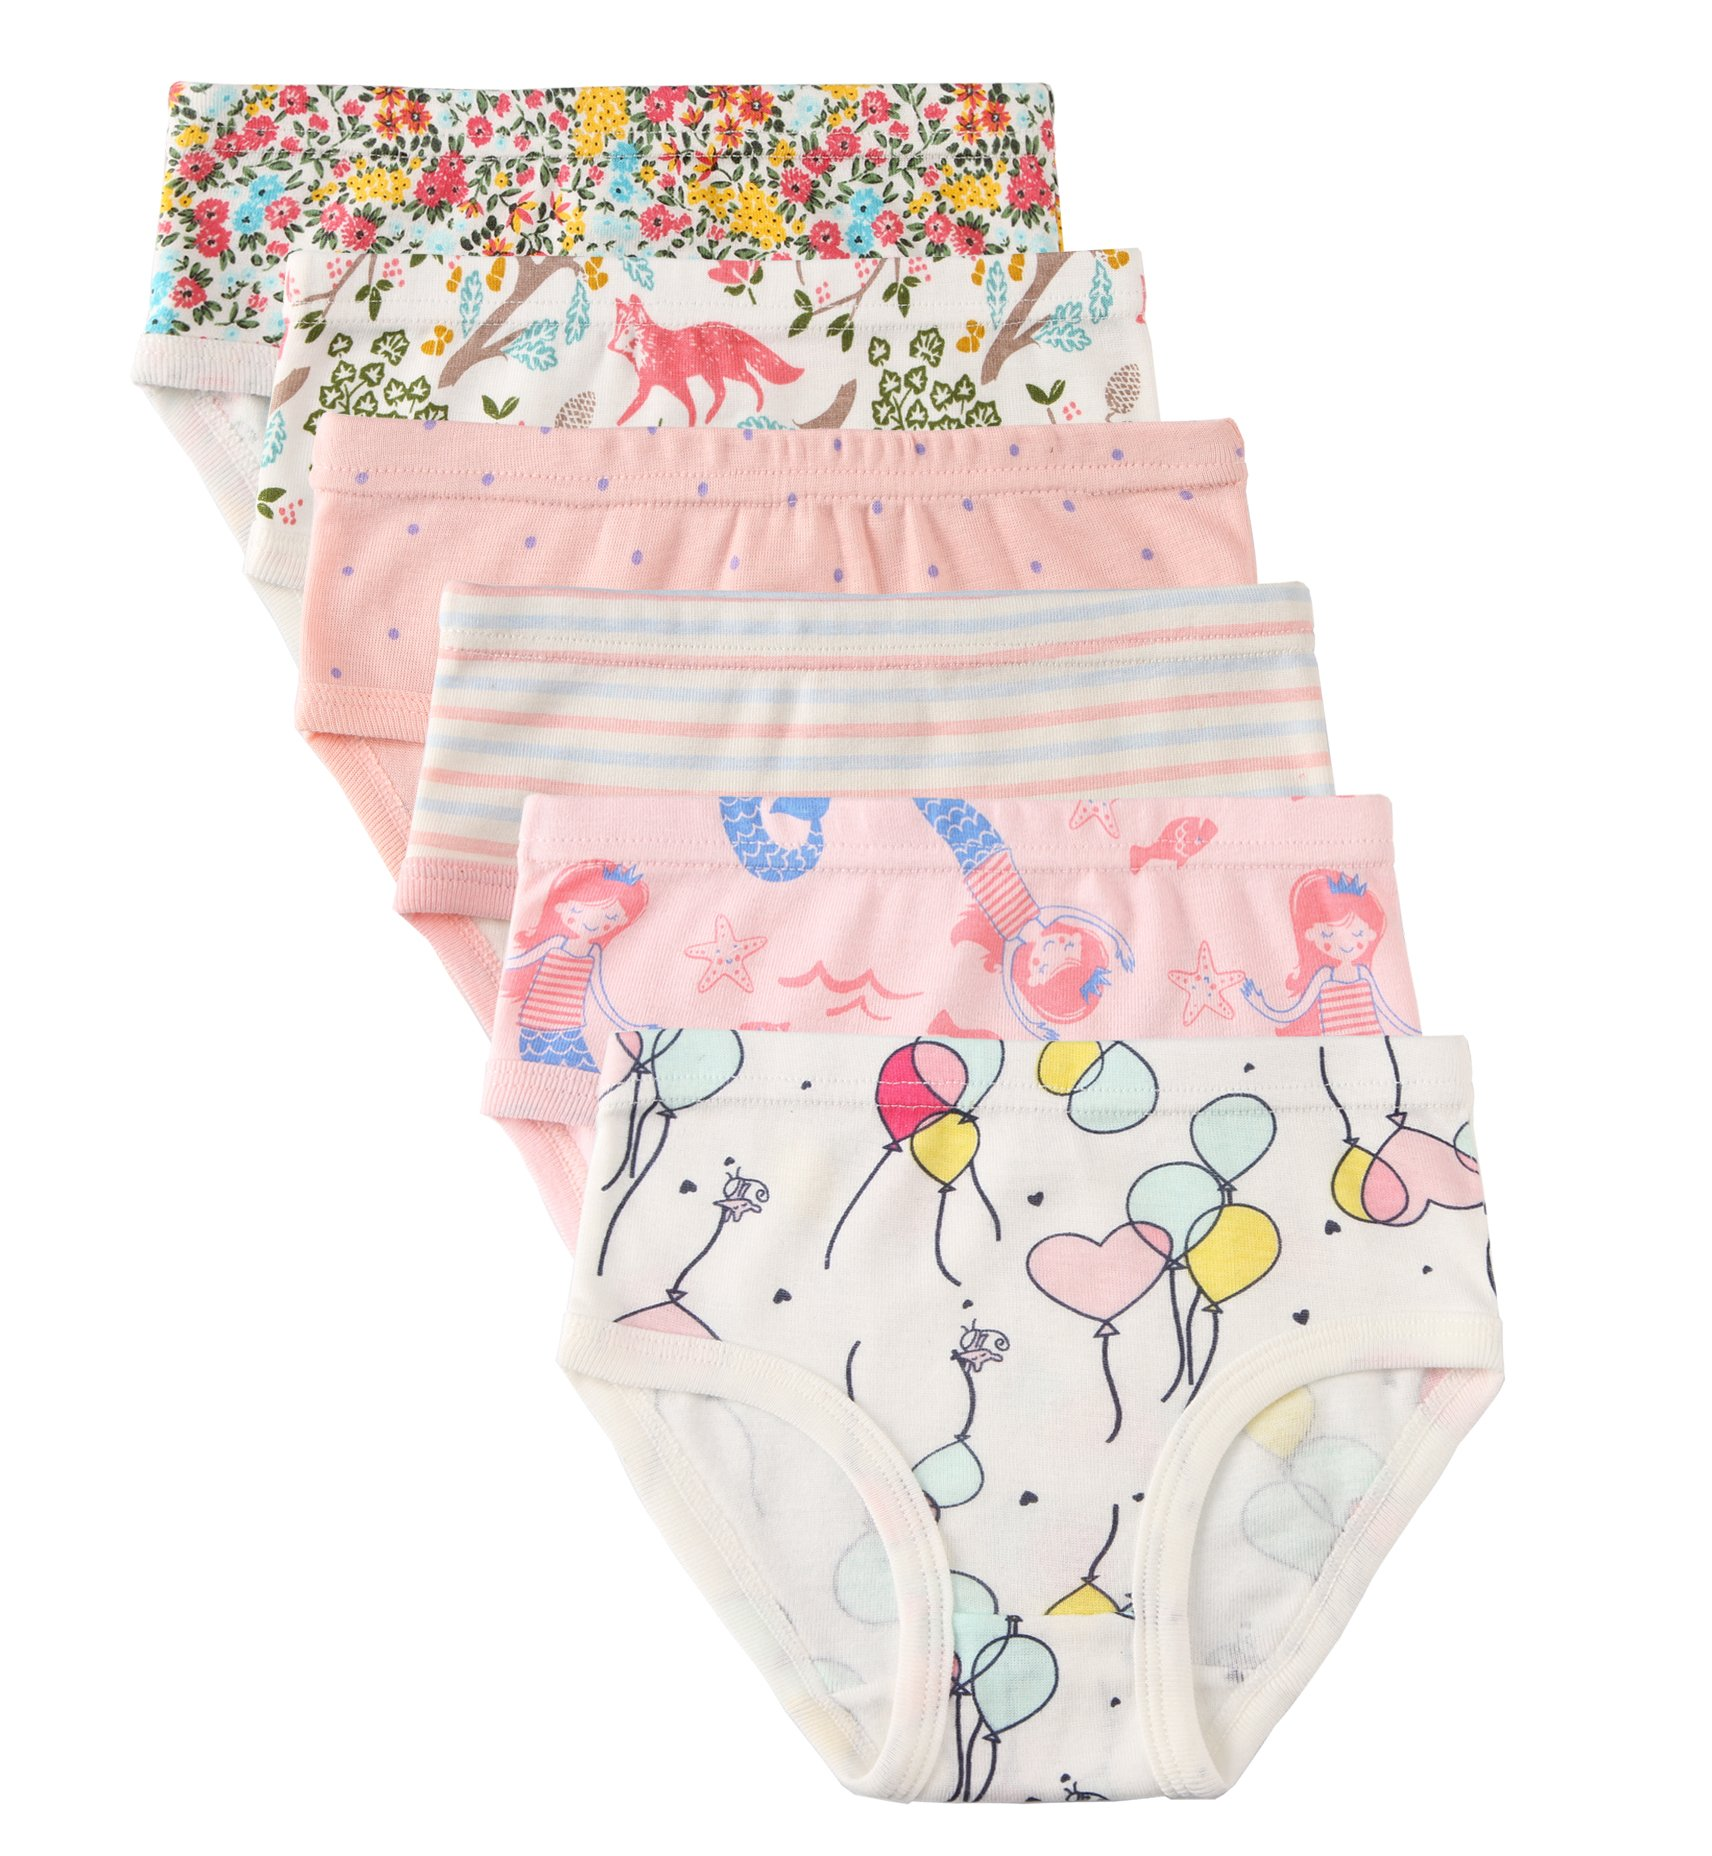 Little Girls' Soft Cotton 6-Pack Underwear Bring Cool, Breathable Comfort Experience in Summer. (Assorted B, 6-7Years)